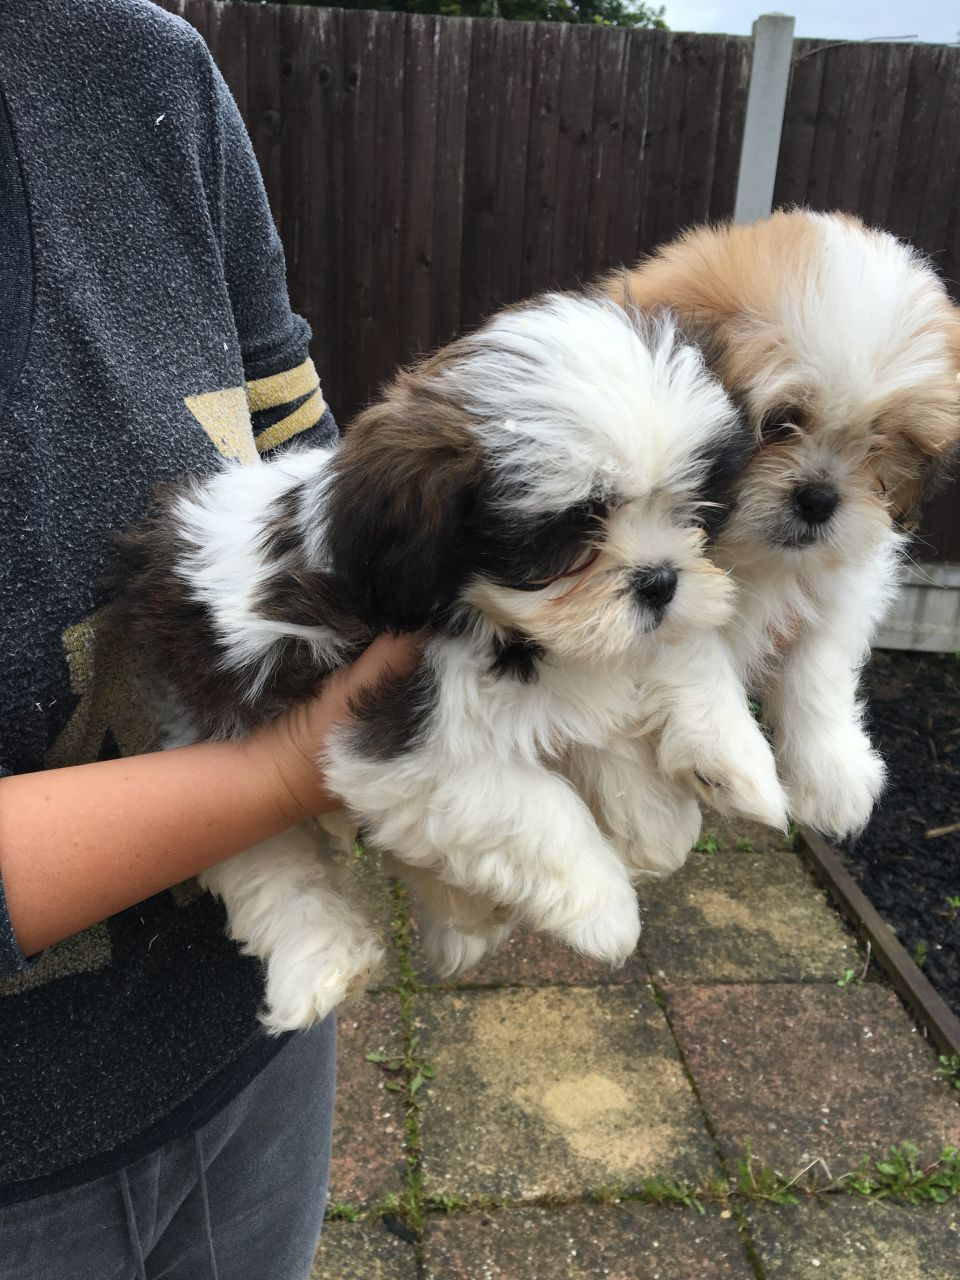 Shih tzu cross bichon frise puppies we have boys and girls